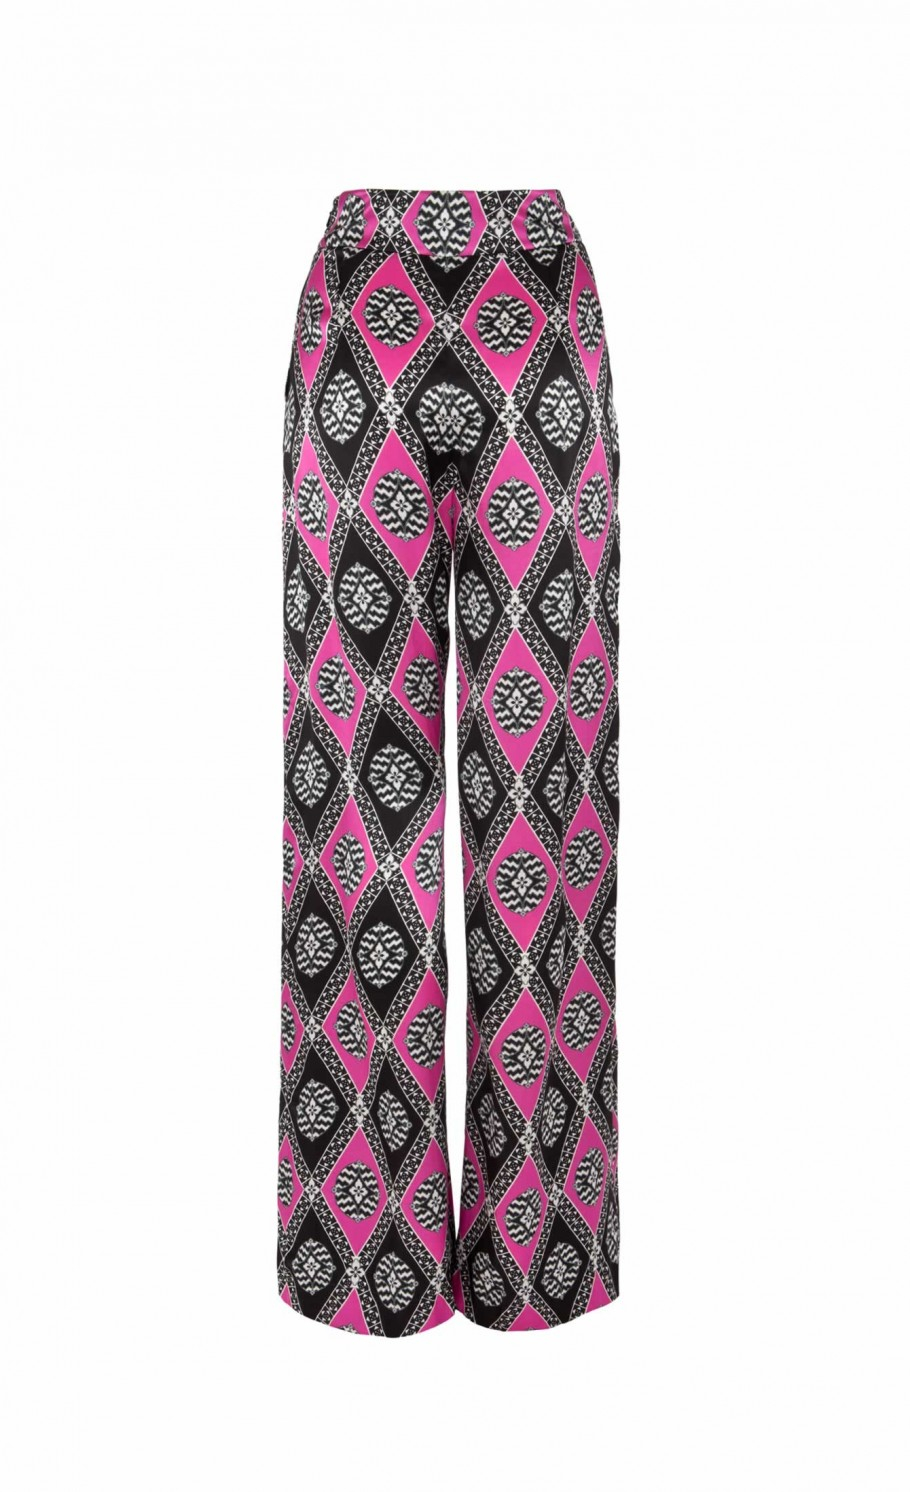 Discount Manchester Footlocker Pictures Cheap Online Rally Printed Trouser Temperley London Low Shipping Fee Sale Online 7HsMCQ